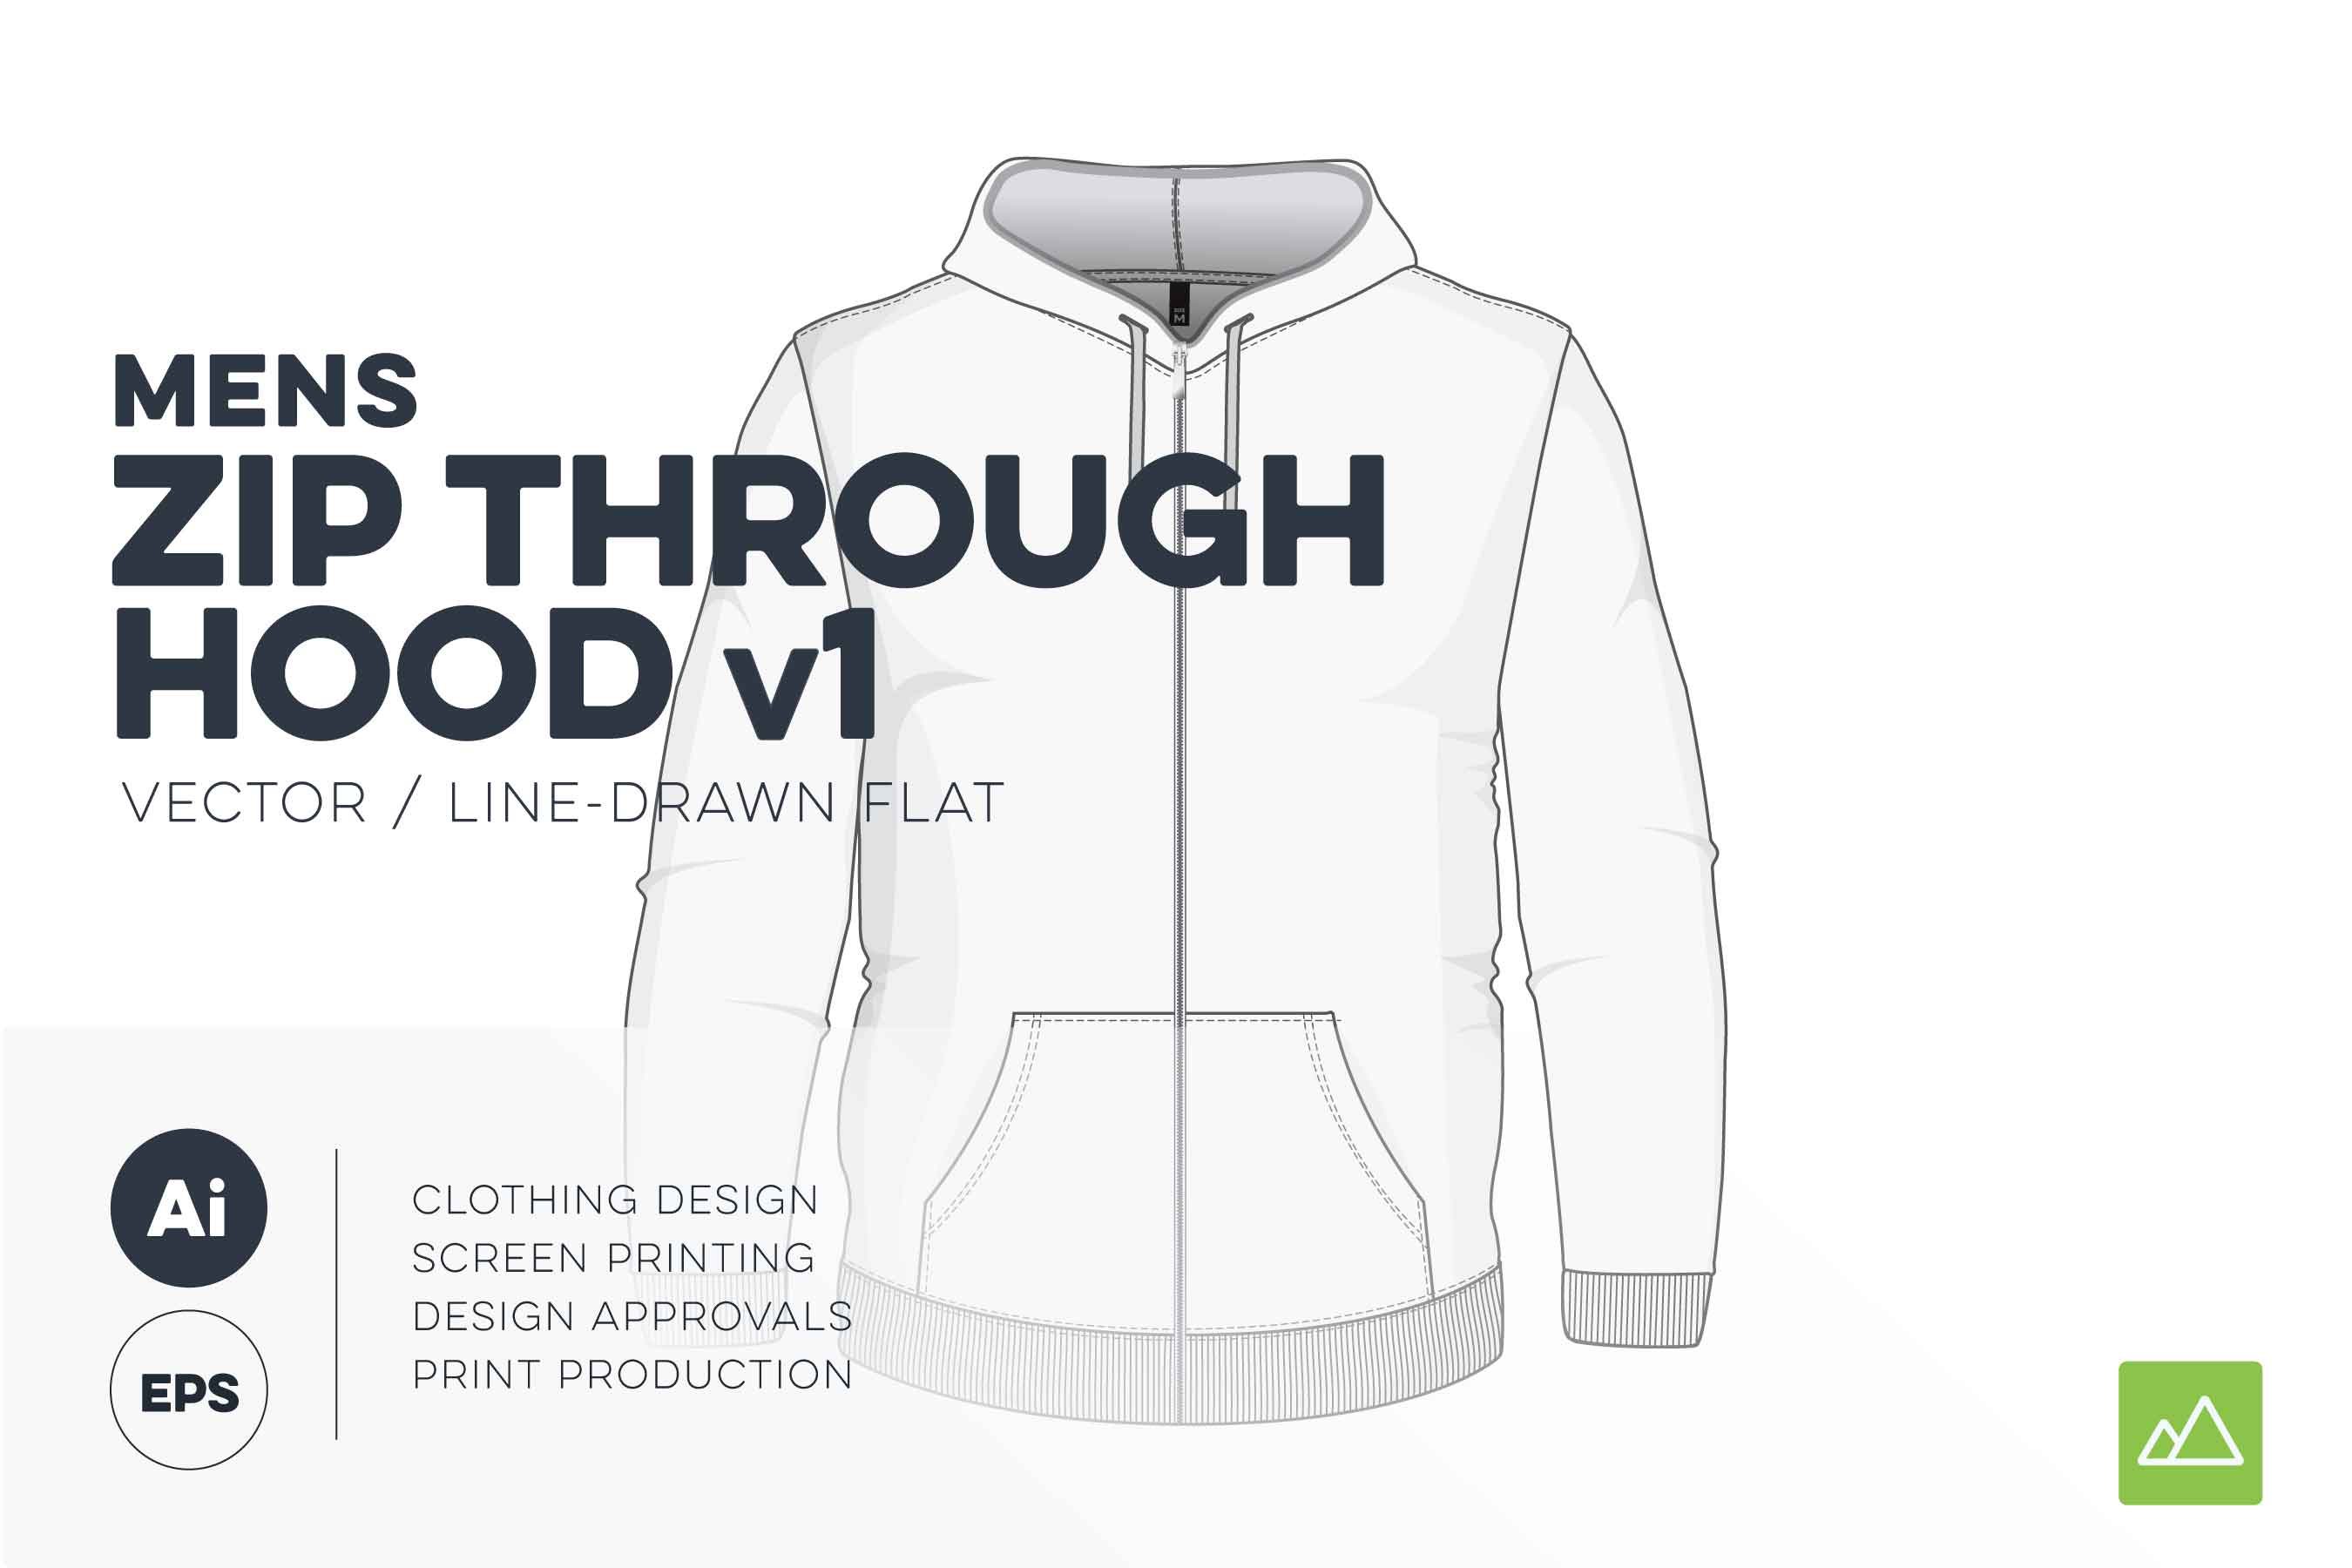 Mens zip through hoodie template vector pack